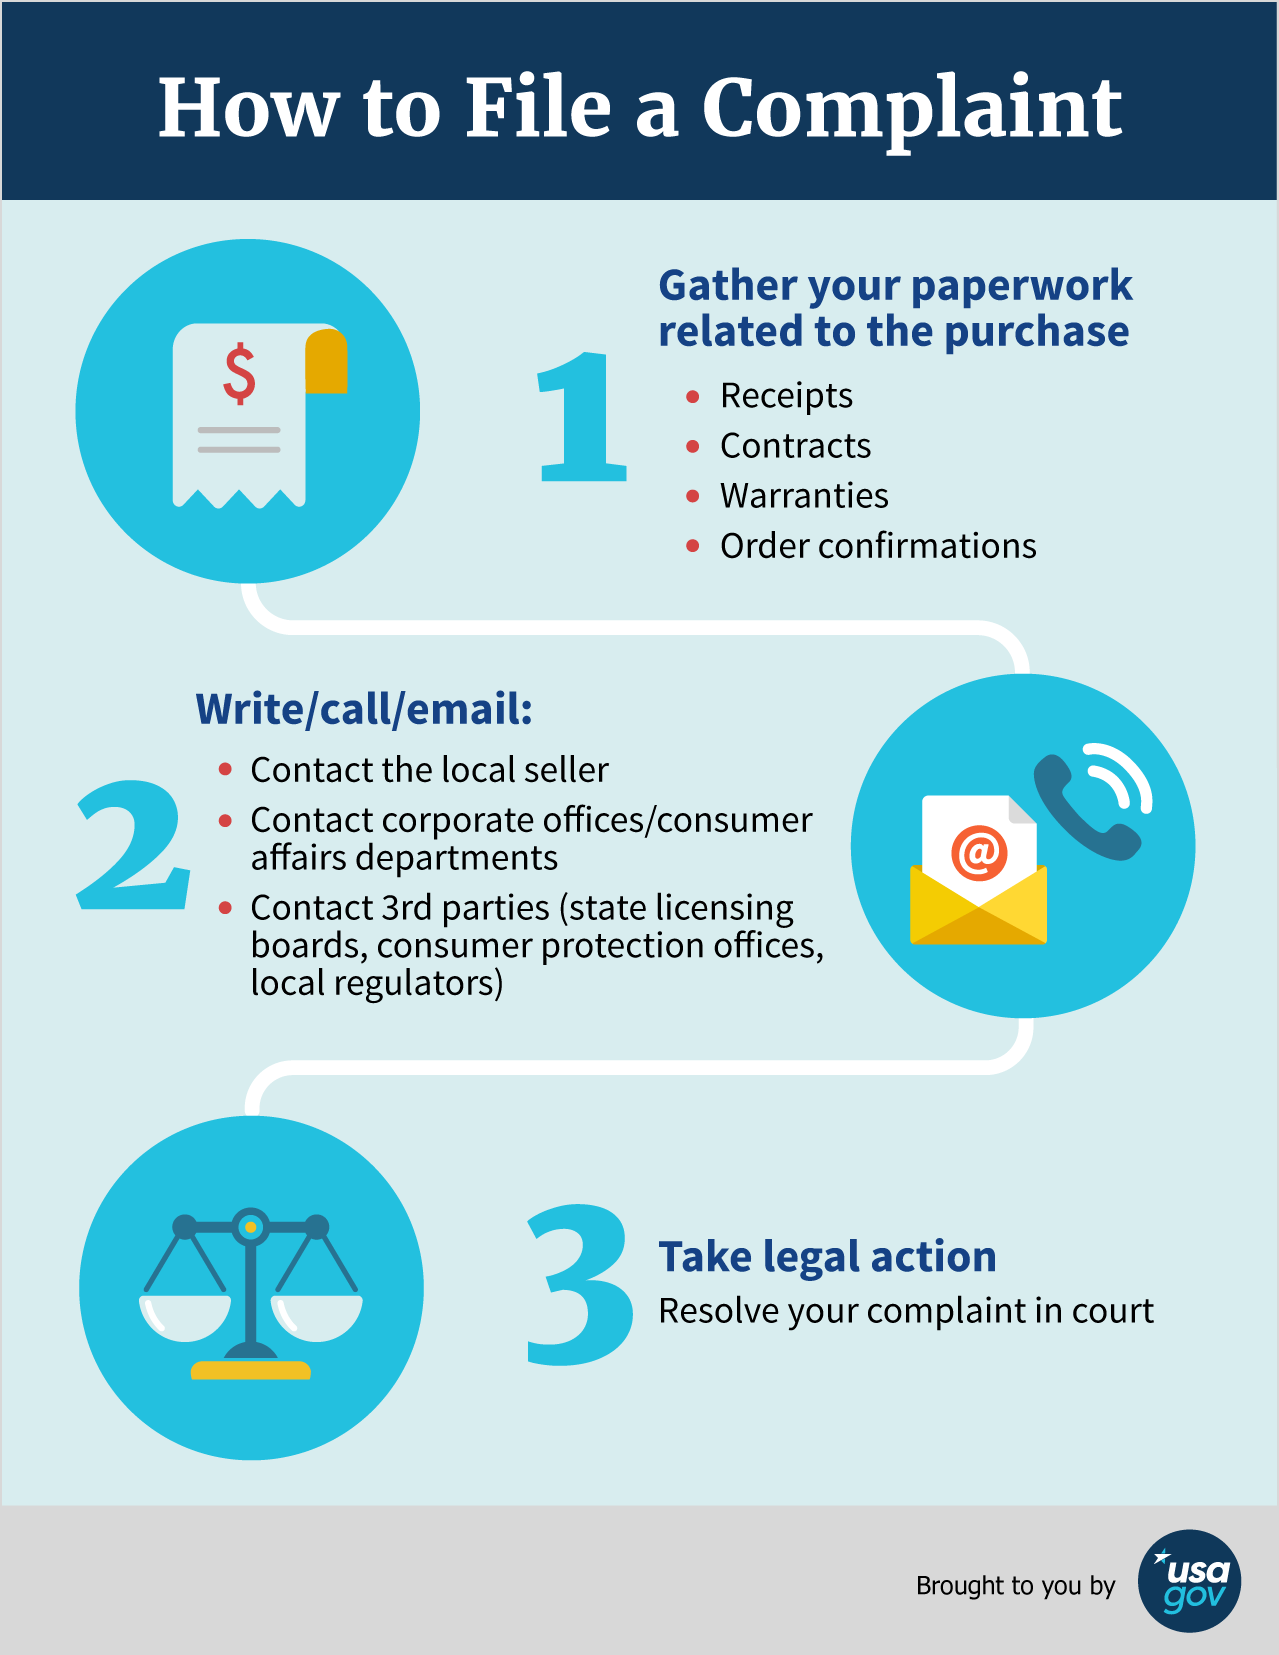 How to file a consumer complaint infographic